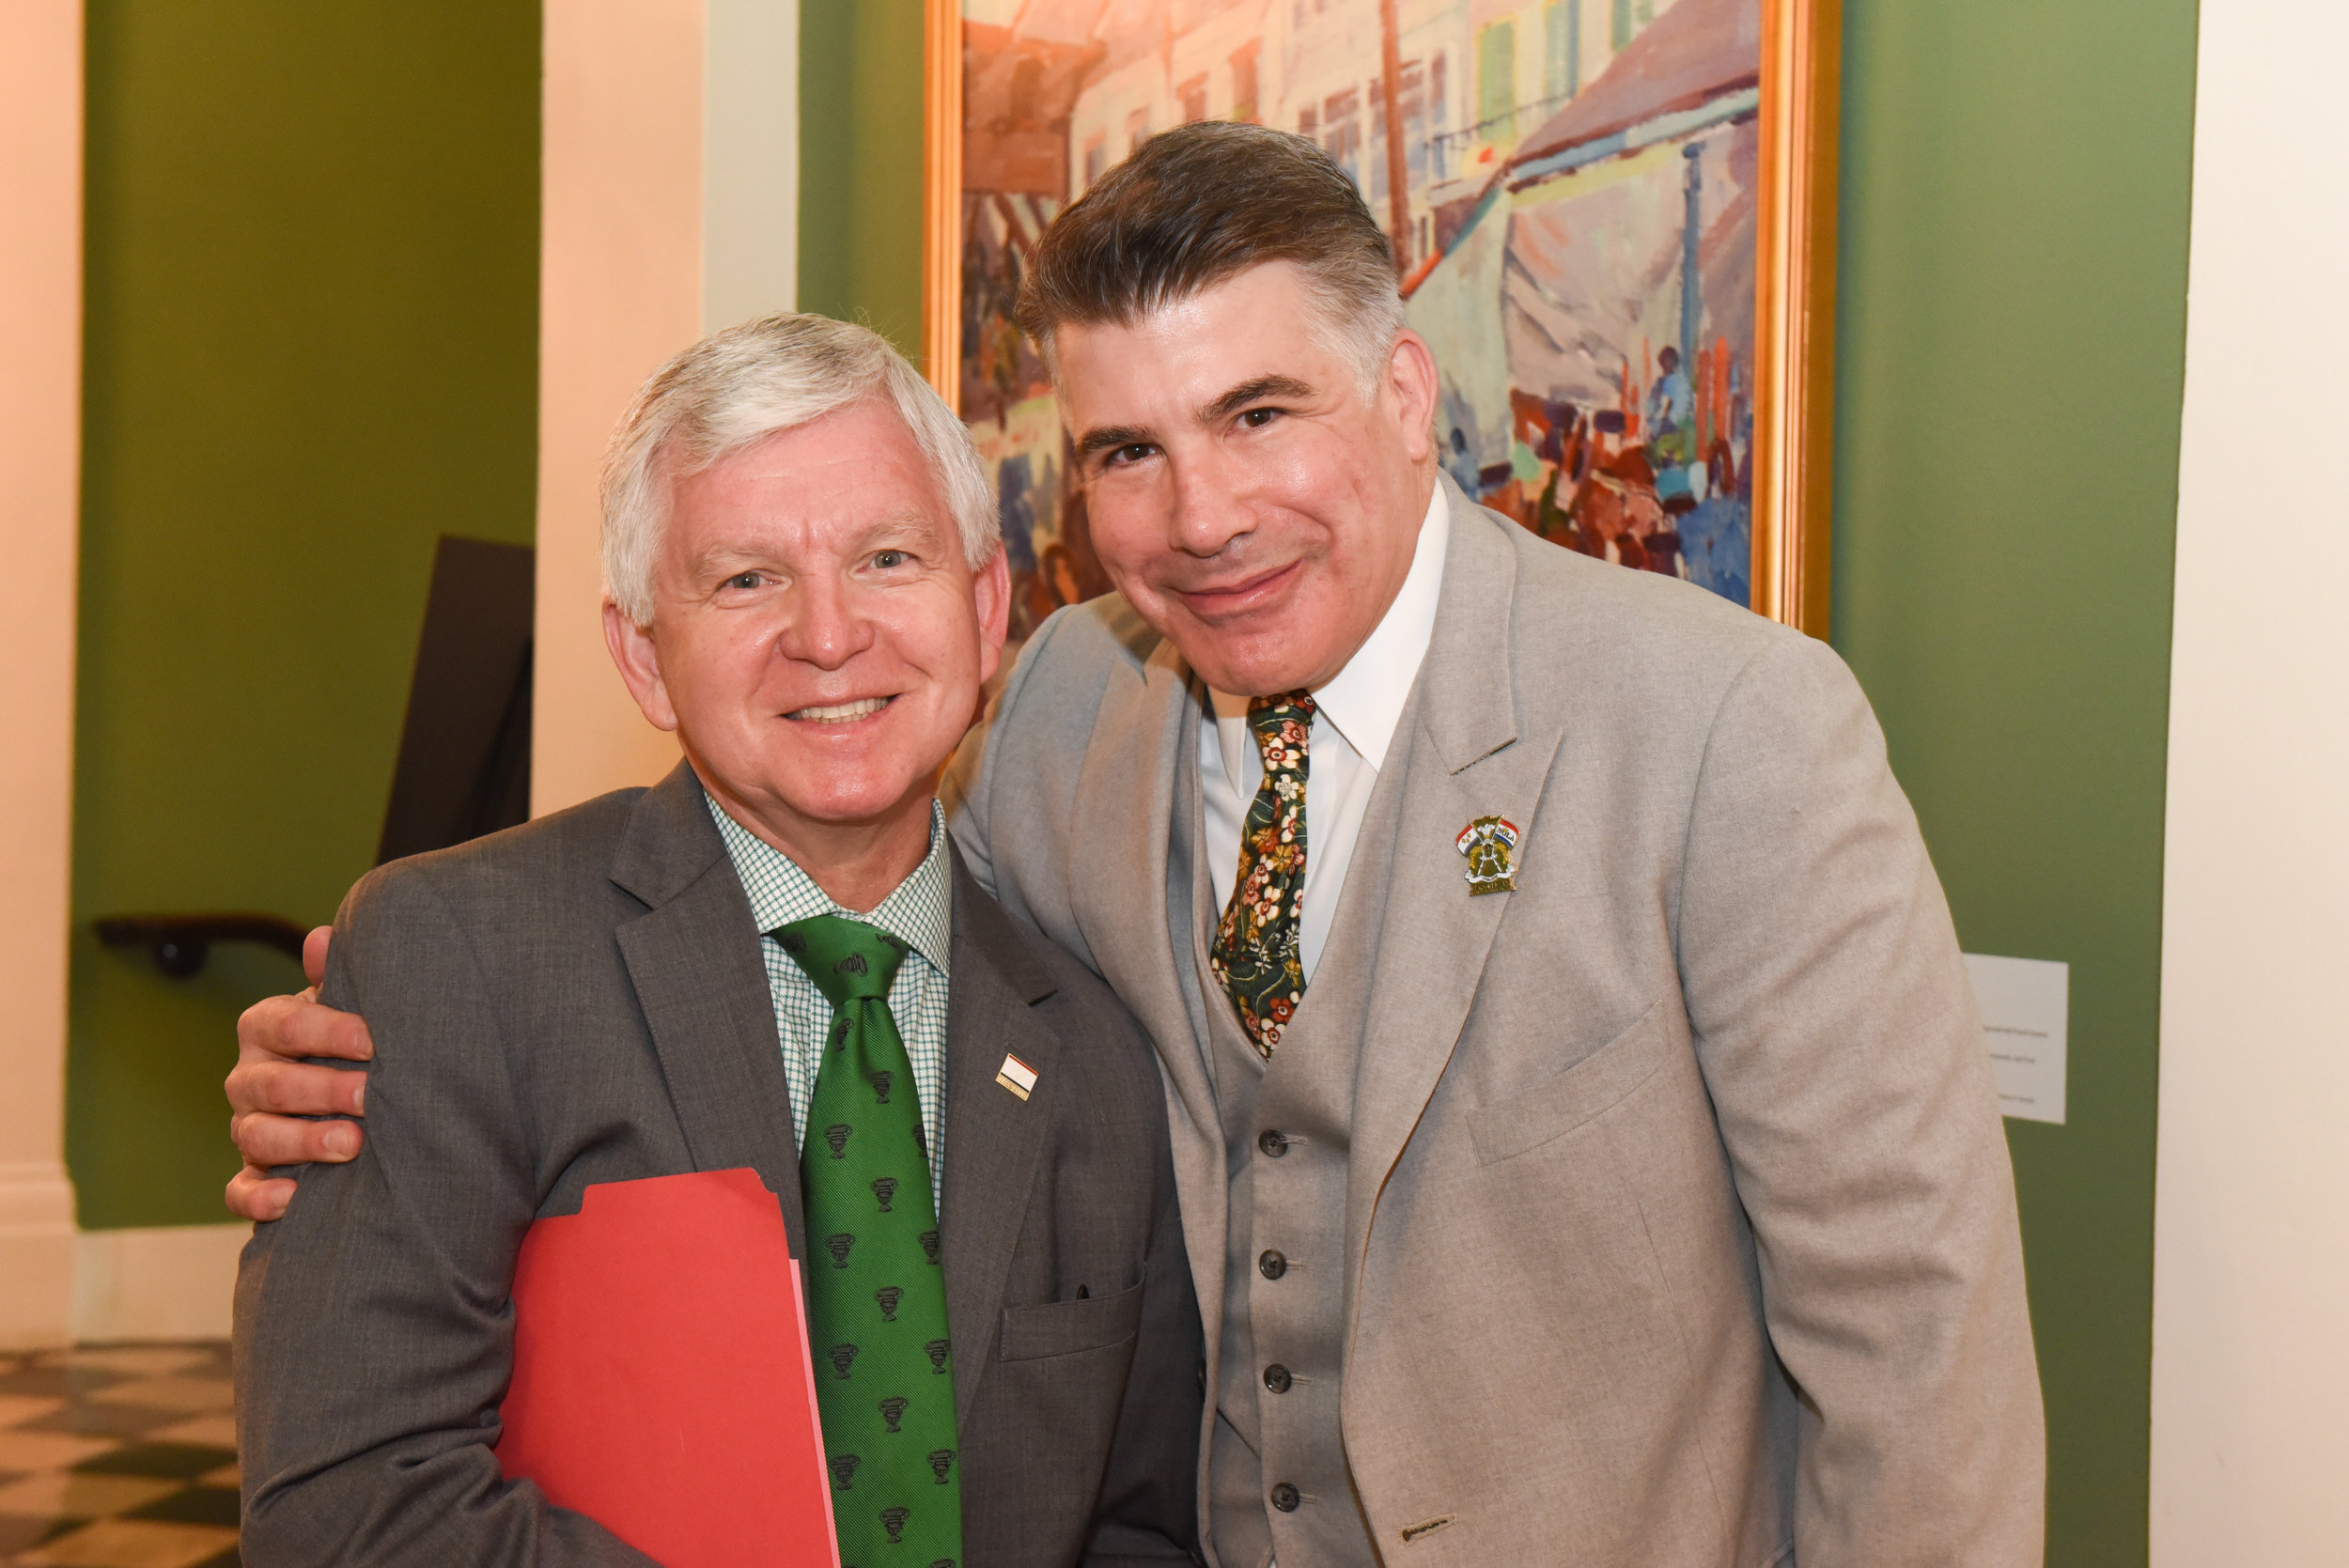 Mark Romig and Bryan Batt